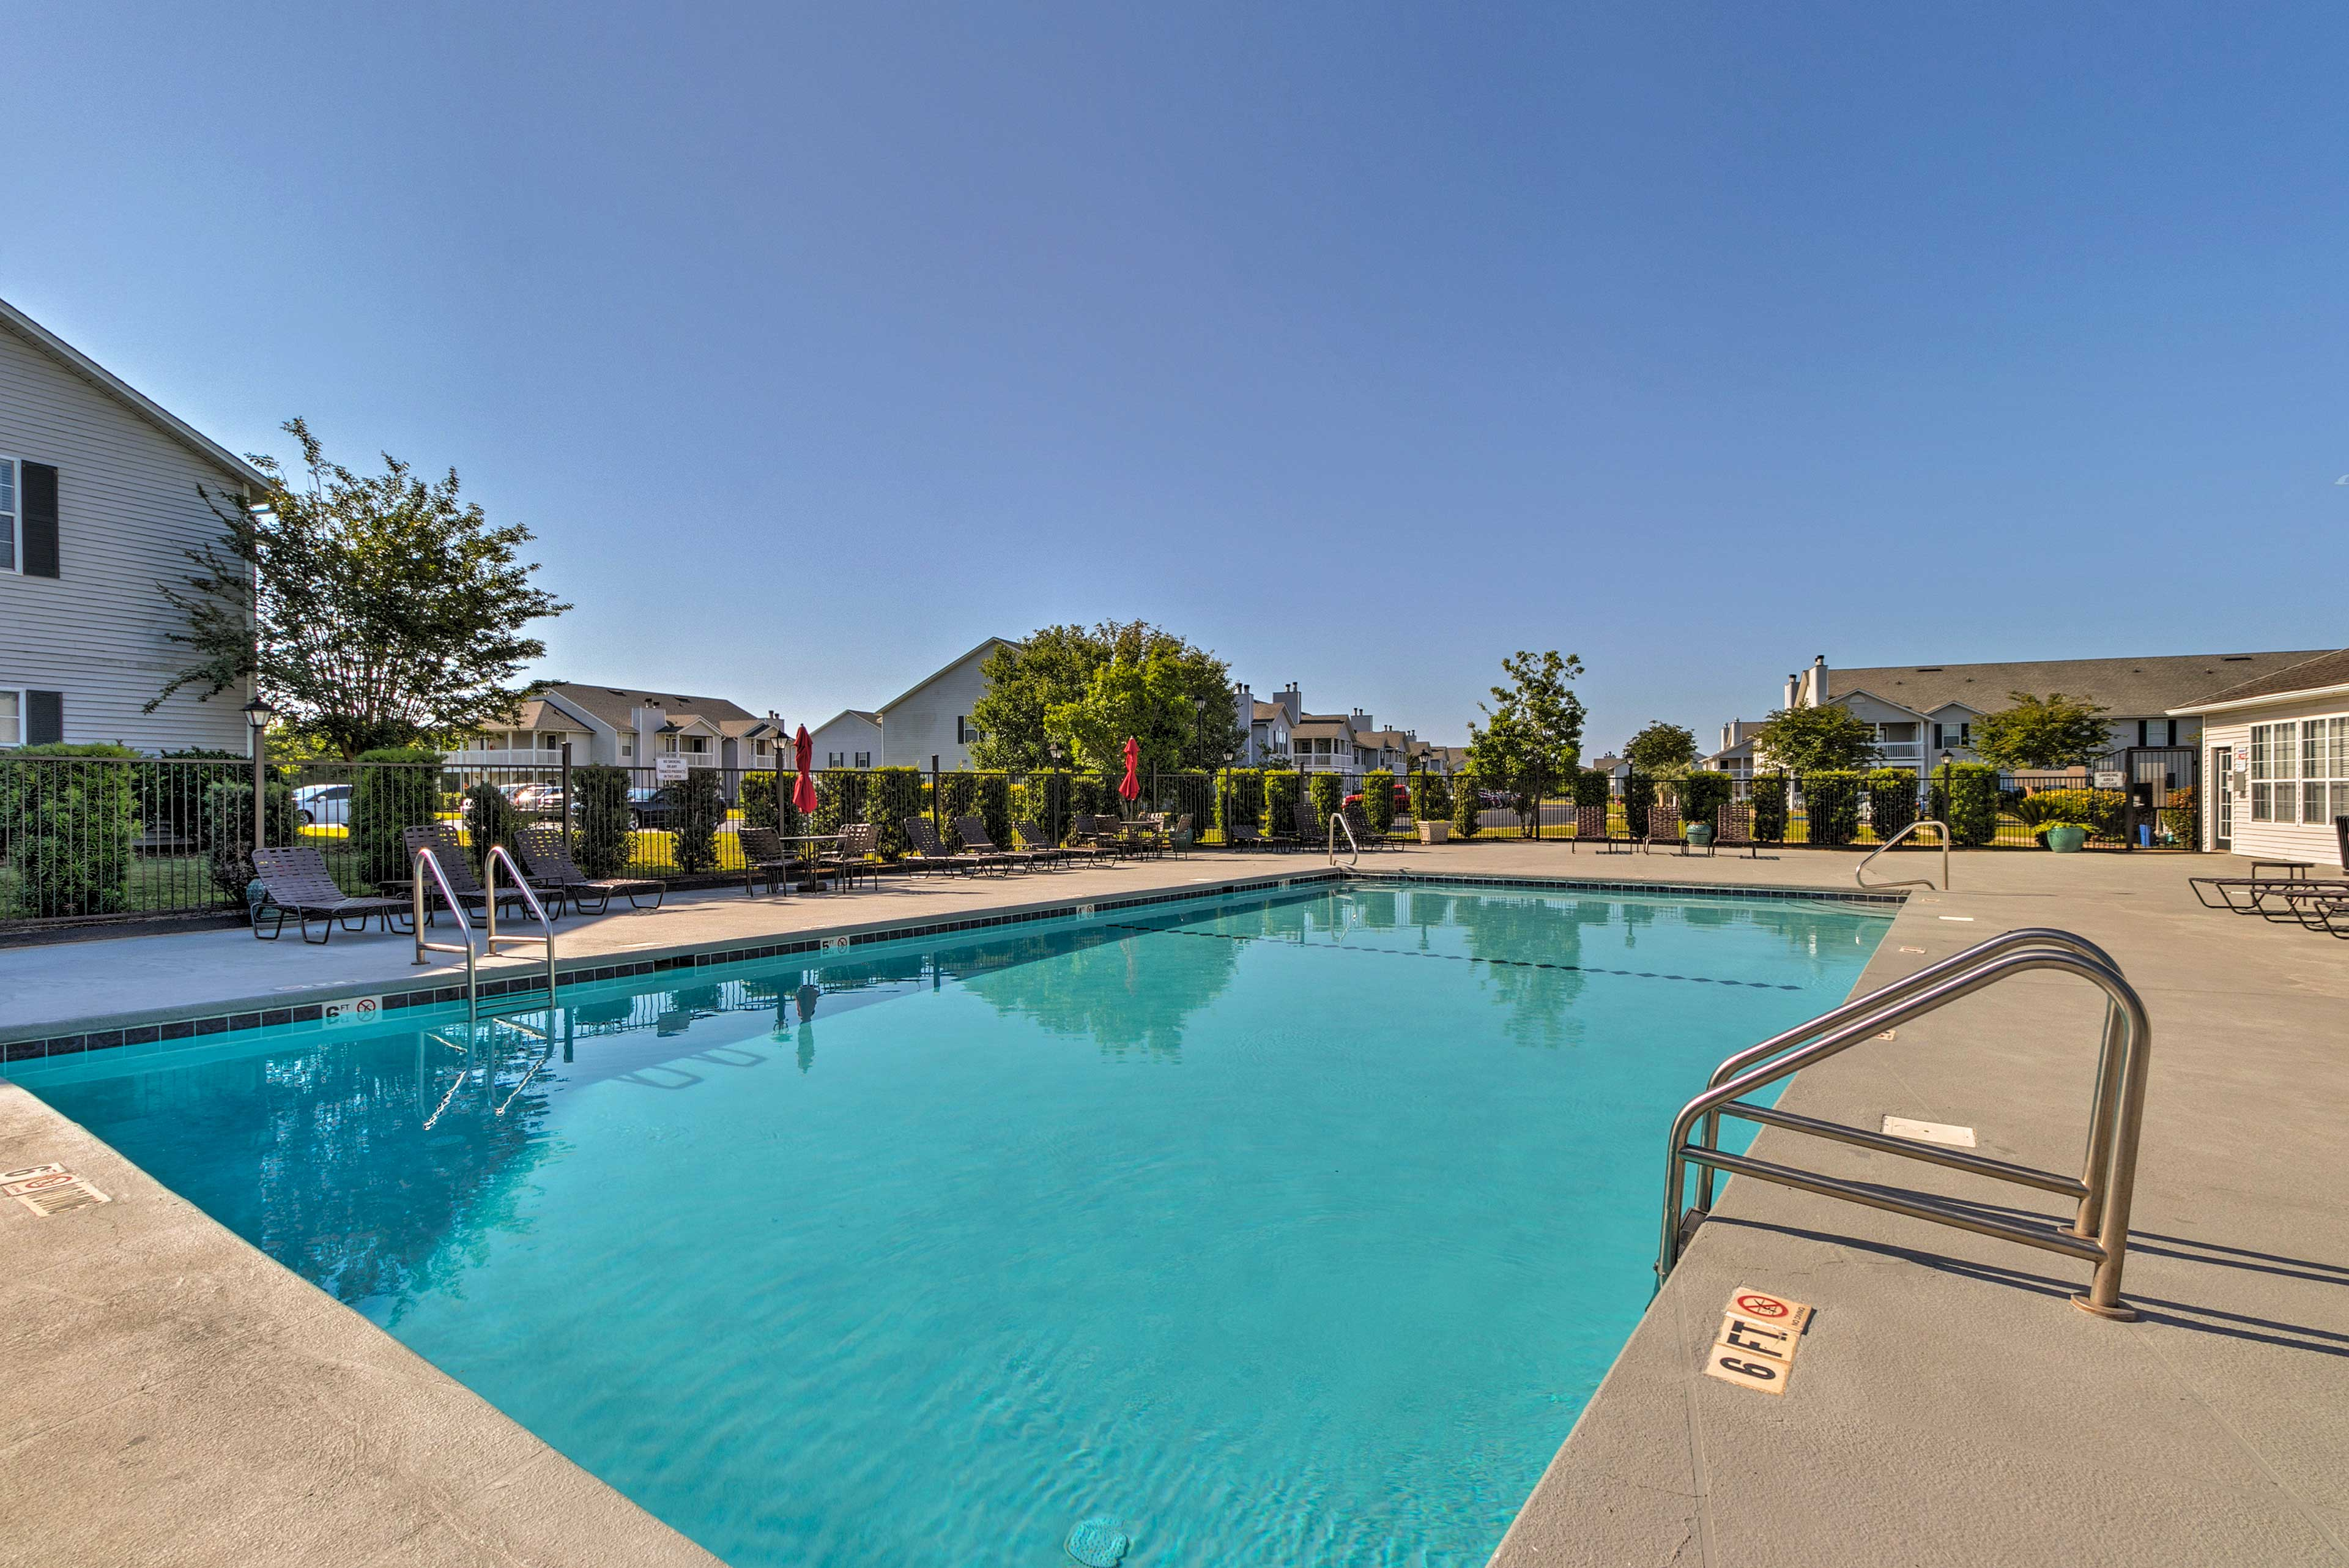 Beat the heat with the community pool.